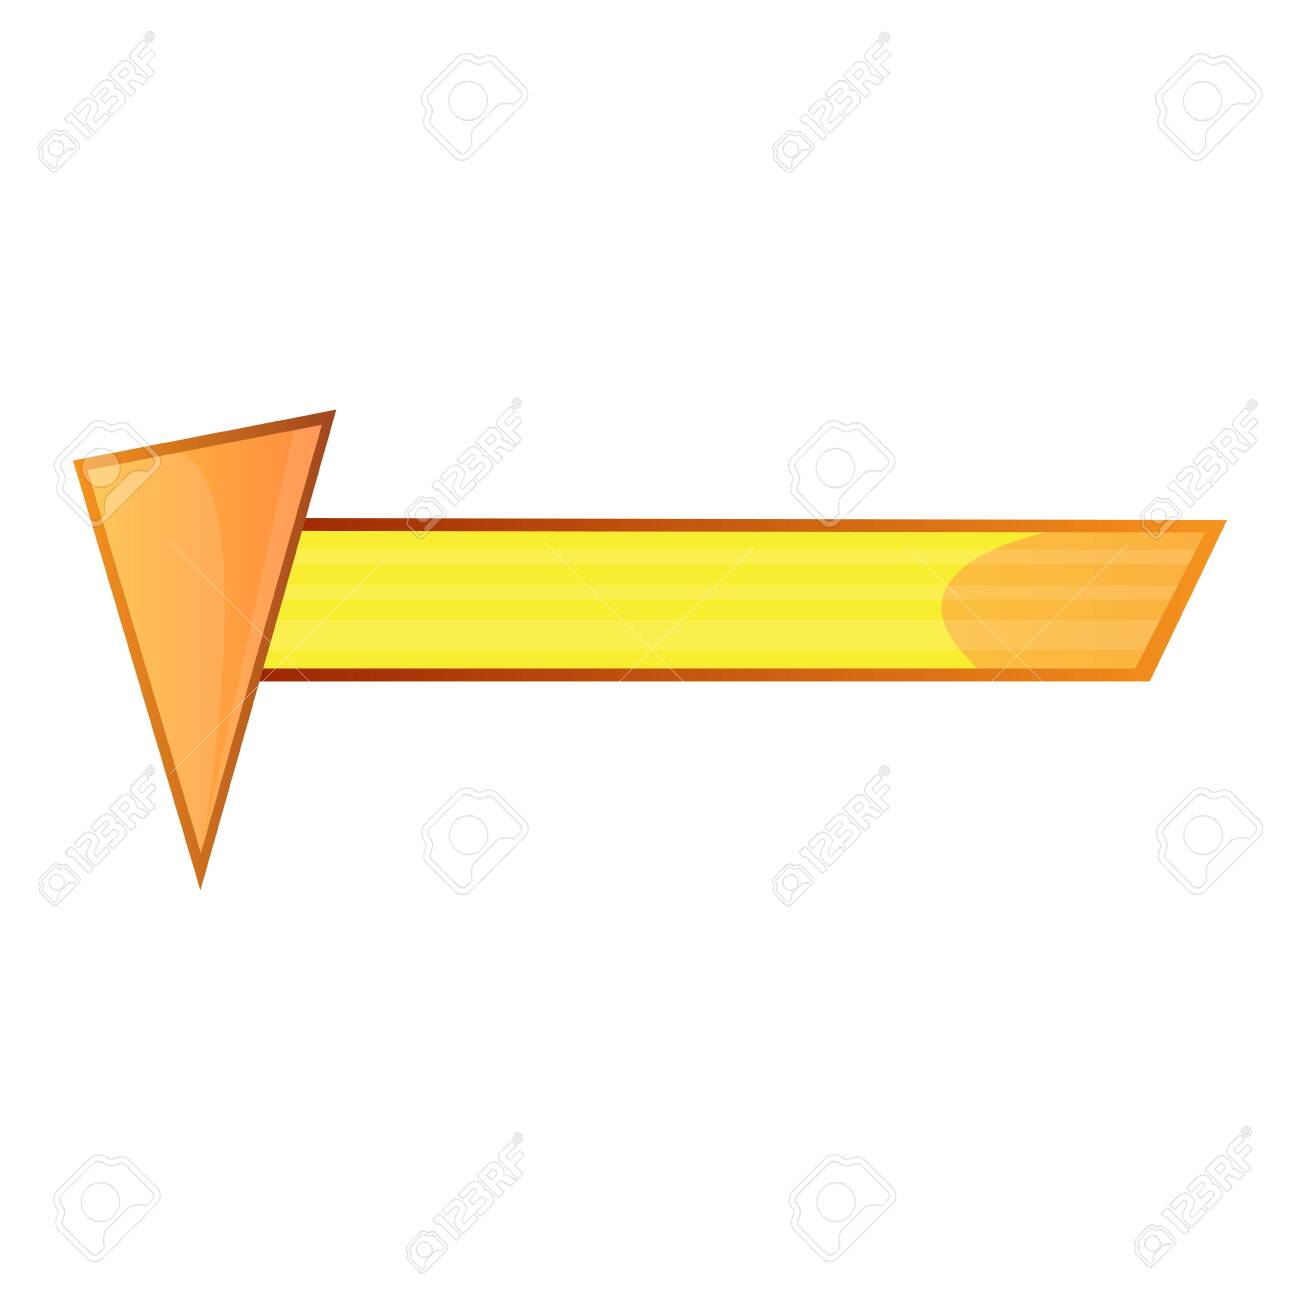 video game energy bar with a thunder vector royalty free cliparts vectors and stock illustration image 126784534 video game energy bar with a thunder vector